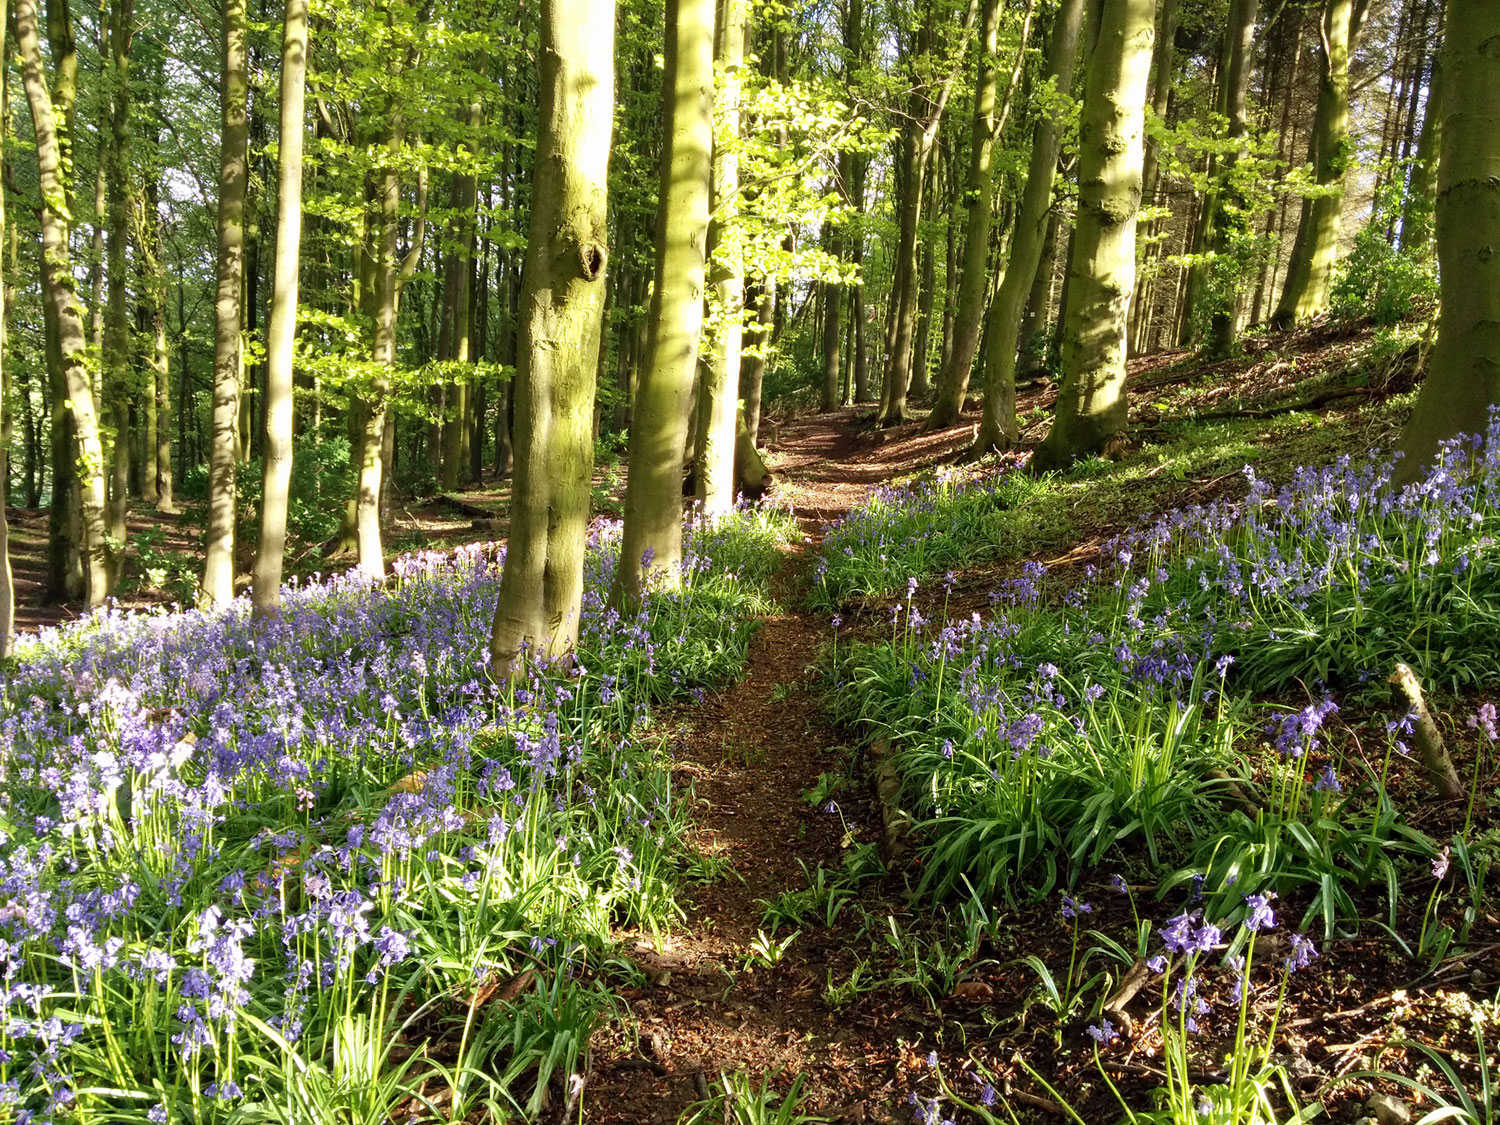 Bluebells in woods at Thornbridge Outdoors